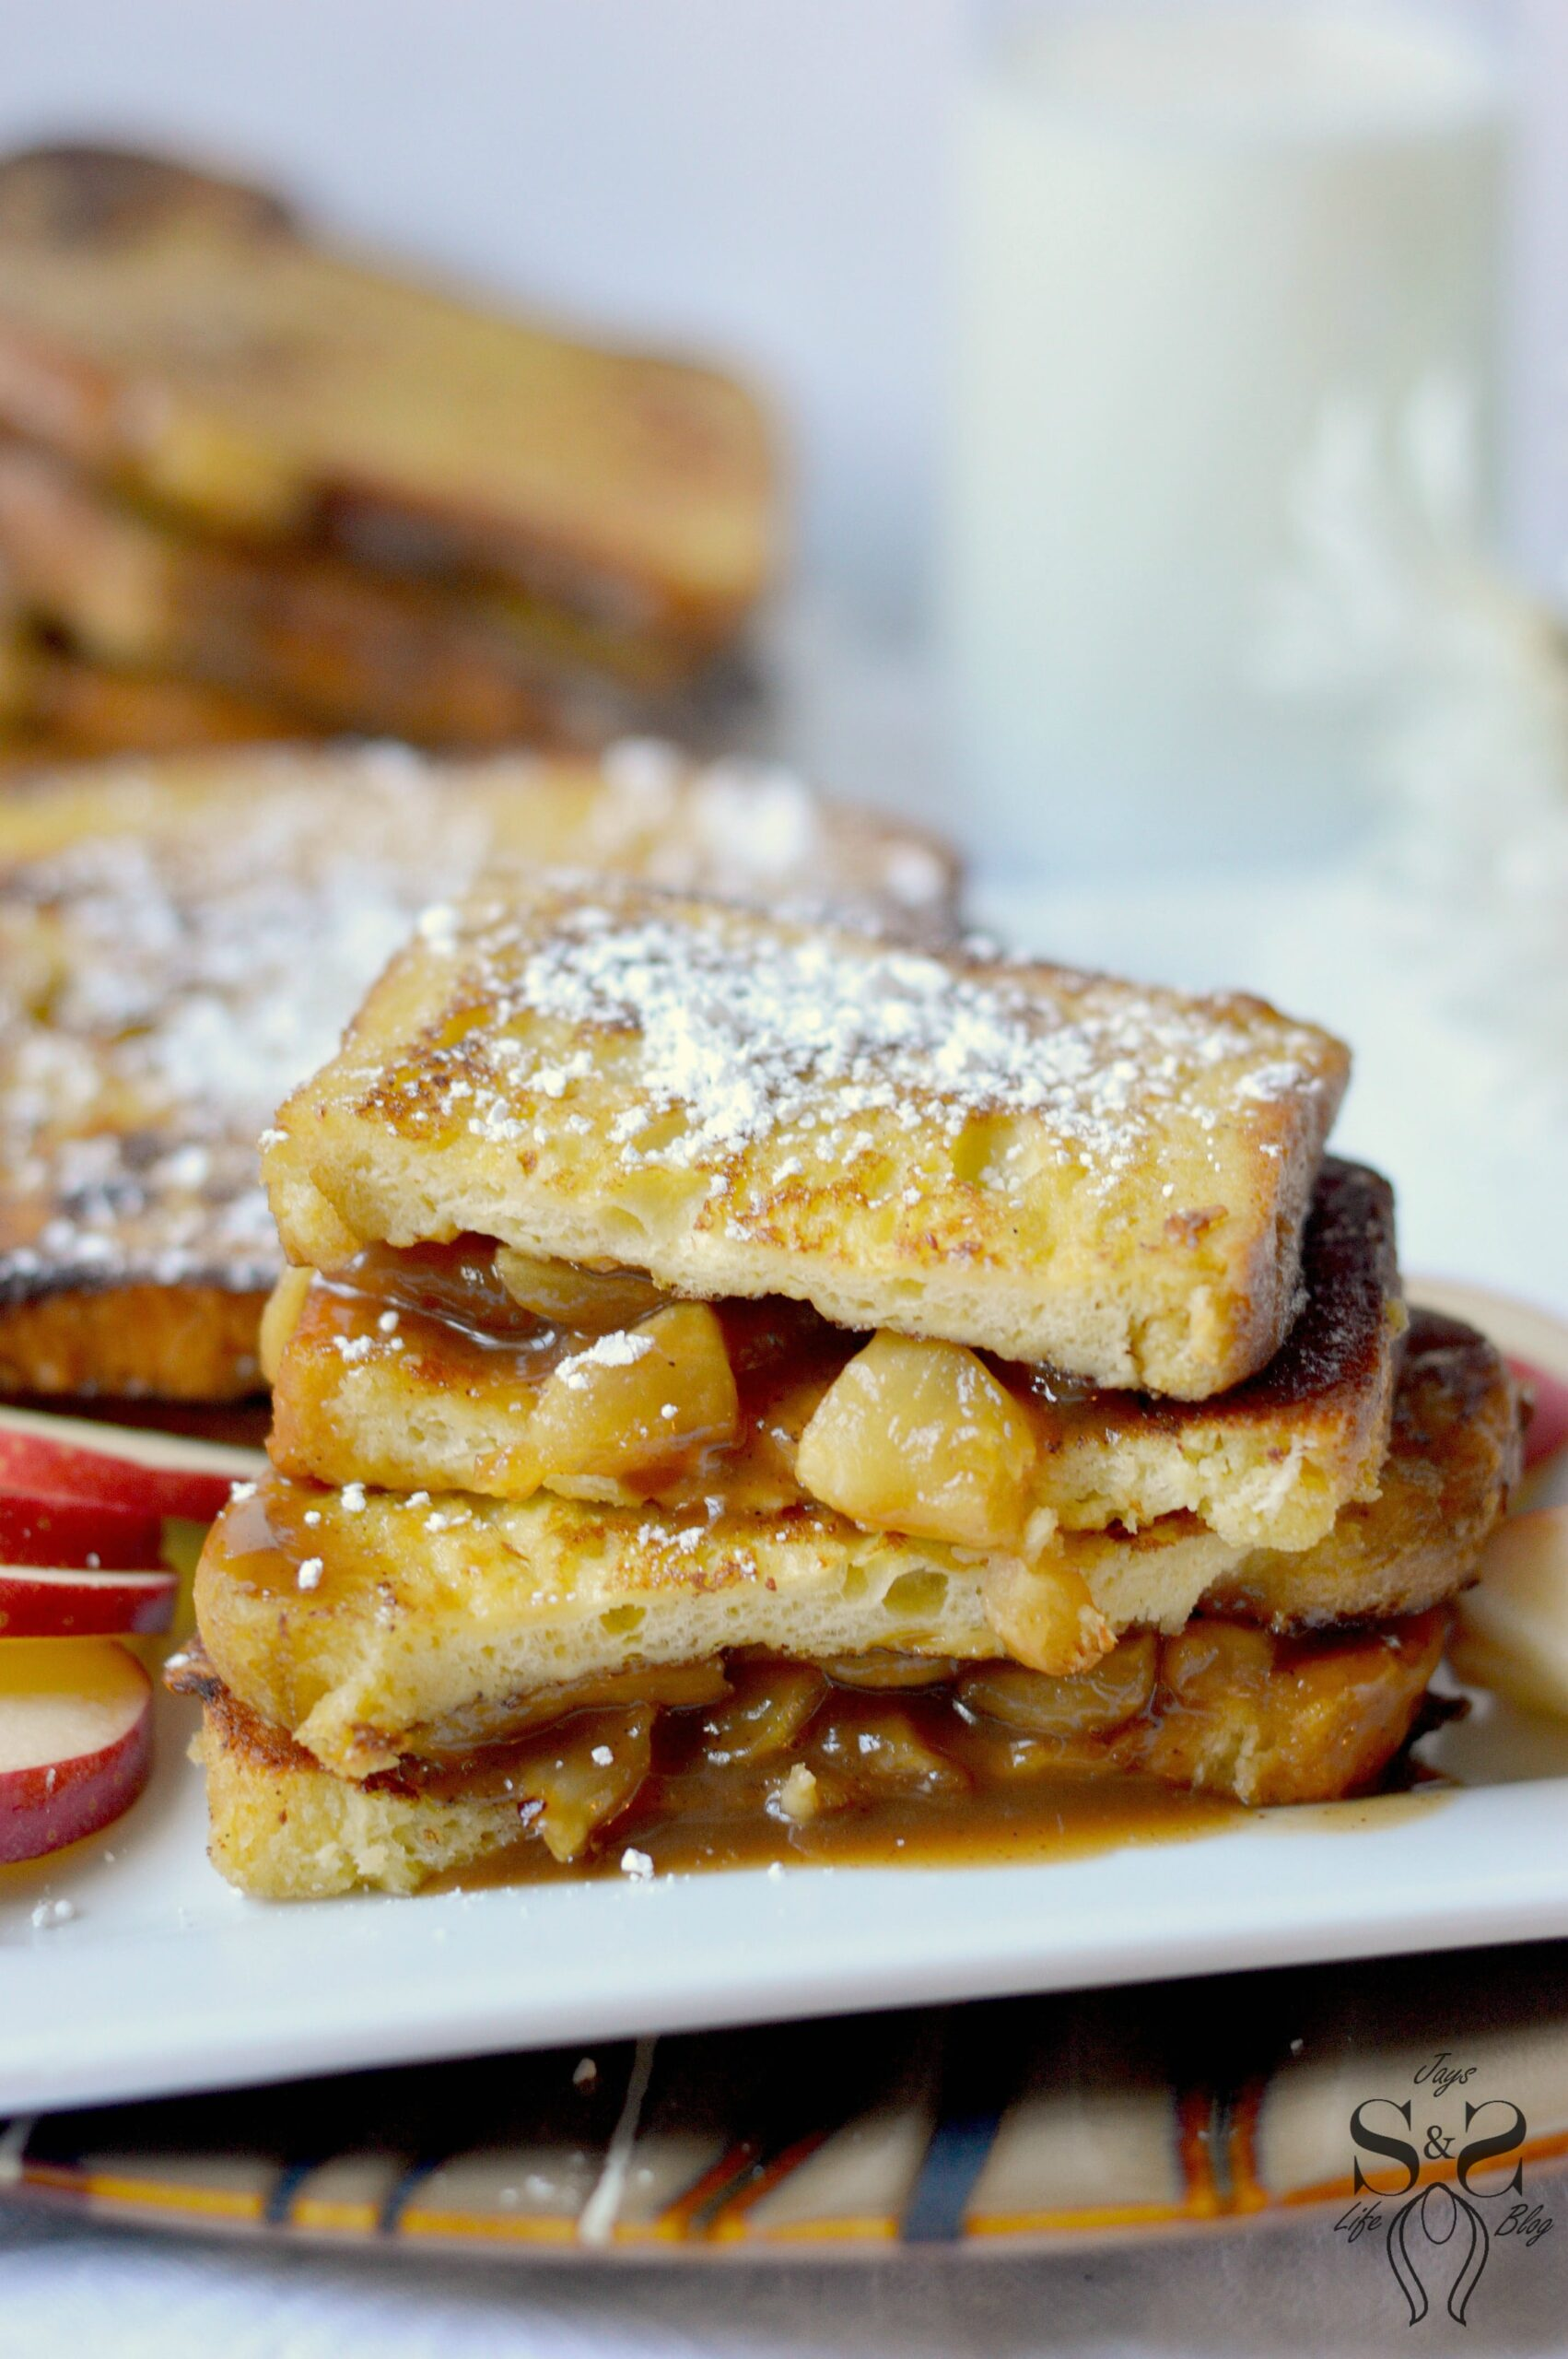 The decadent Caramel Apple Stuffed French Toast has a cooked caramel apple filling stuffed between challah French toast. This easy-to-make breakfast recipe is perfect for brunch, Saturday morning breakfast, or brinner.